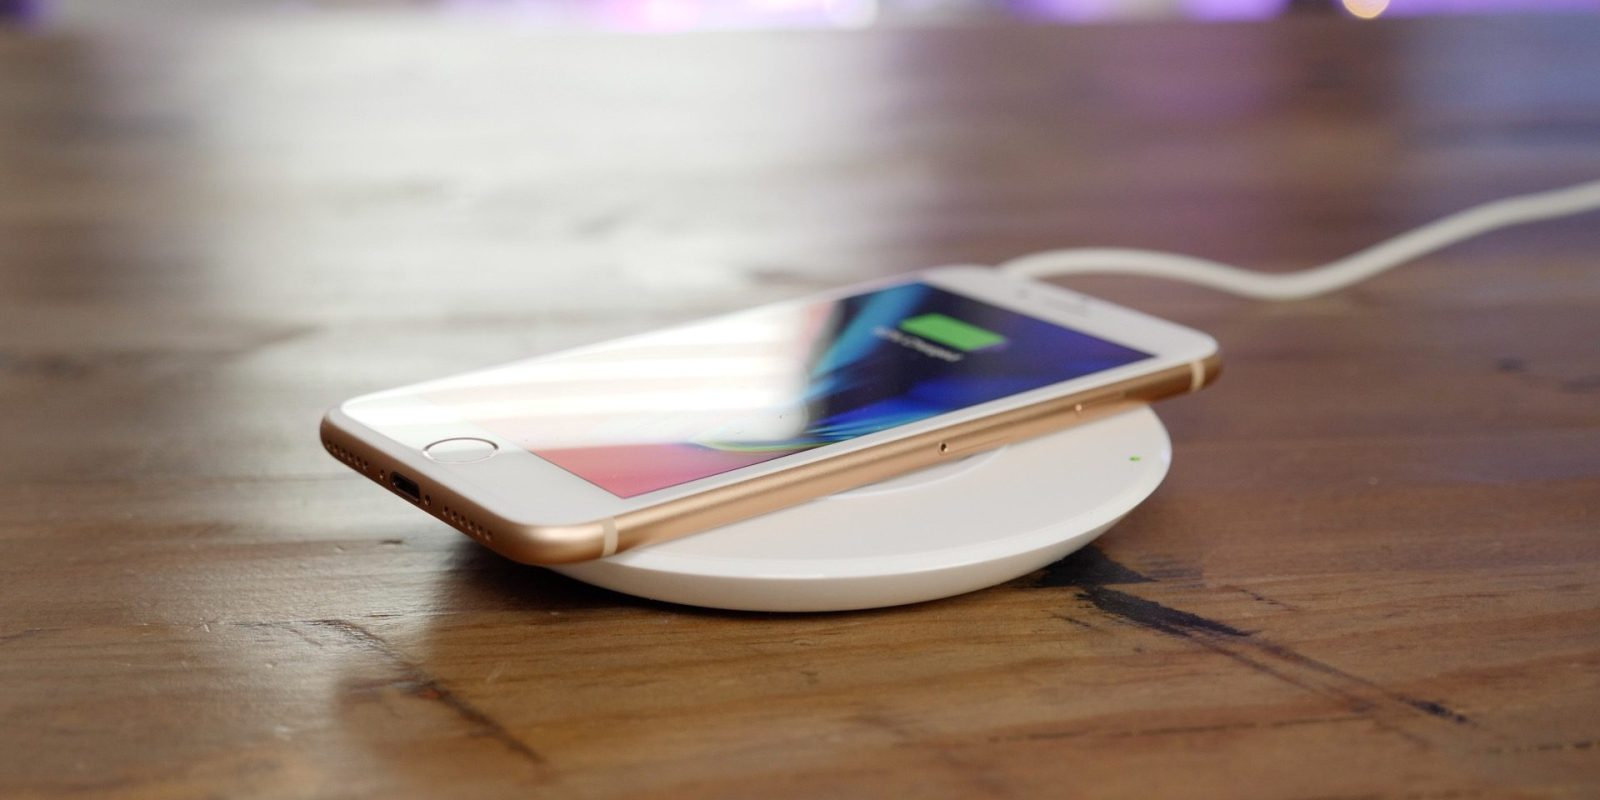 huge discount a9d16 092ad Early testing shows 7.5W 'fast' wireless charging has small effect ...